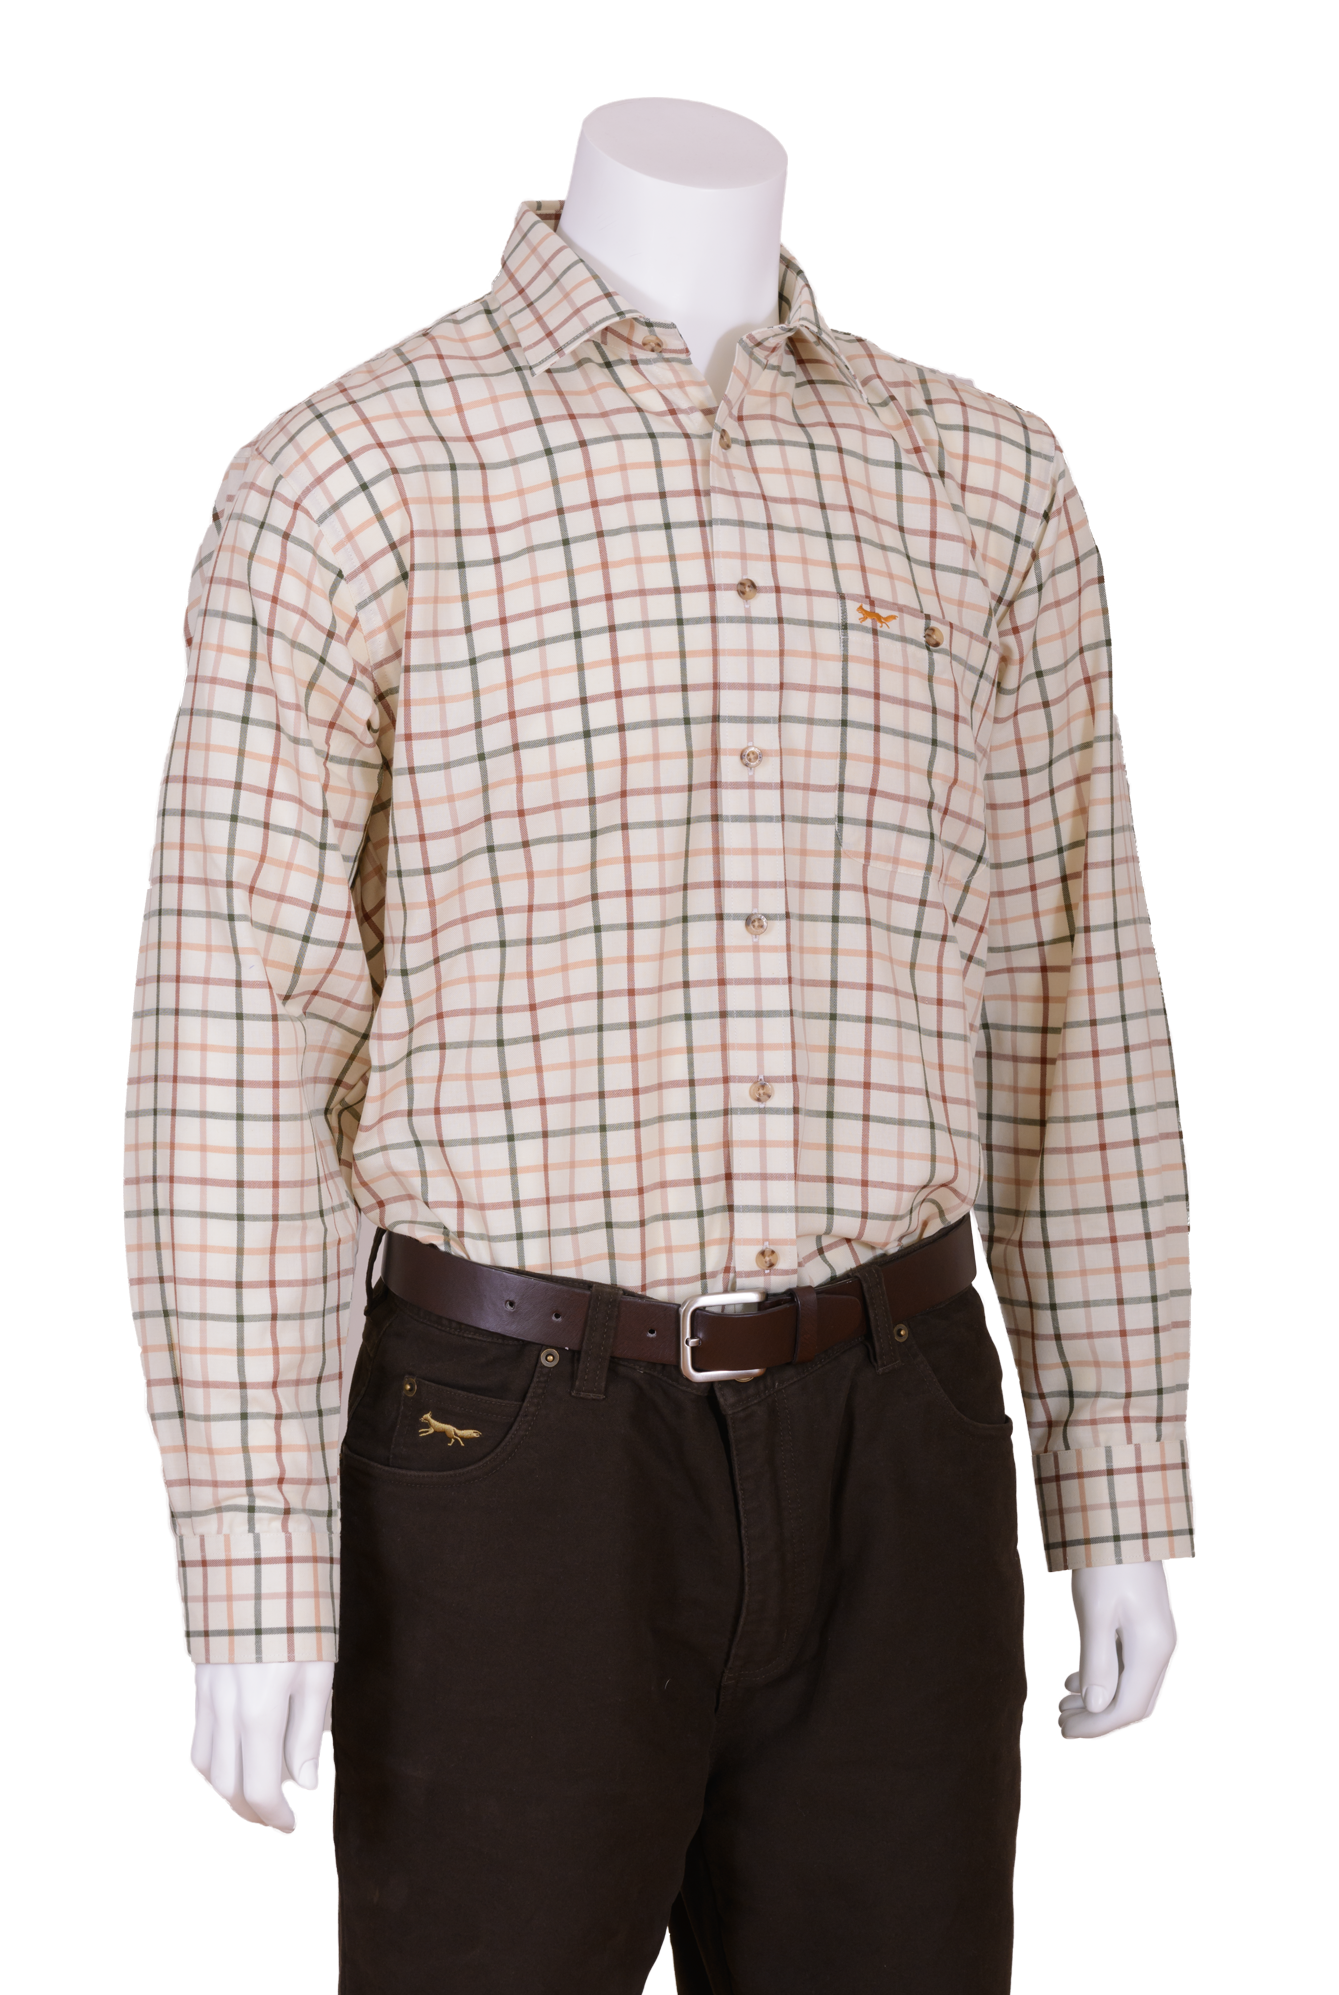 Cottingham - Classic country shirt